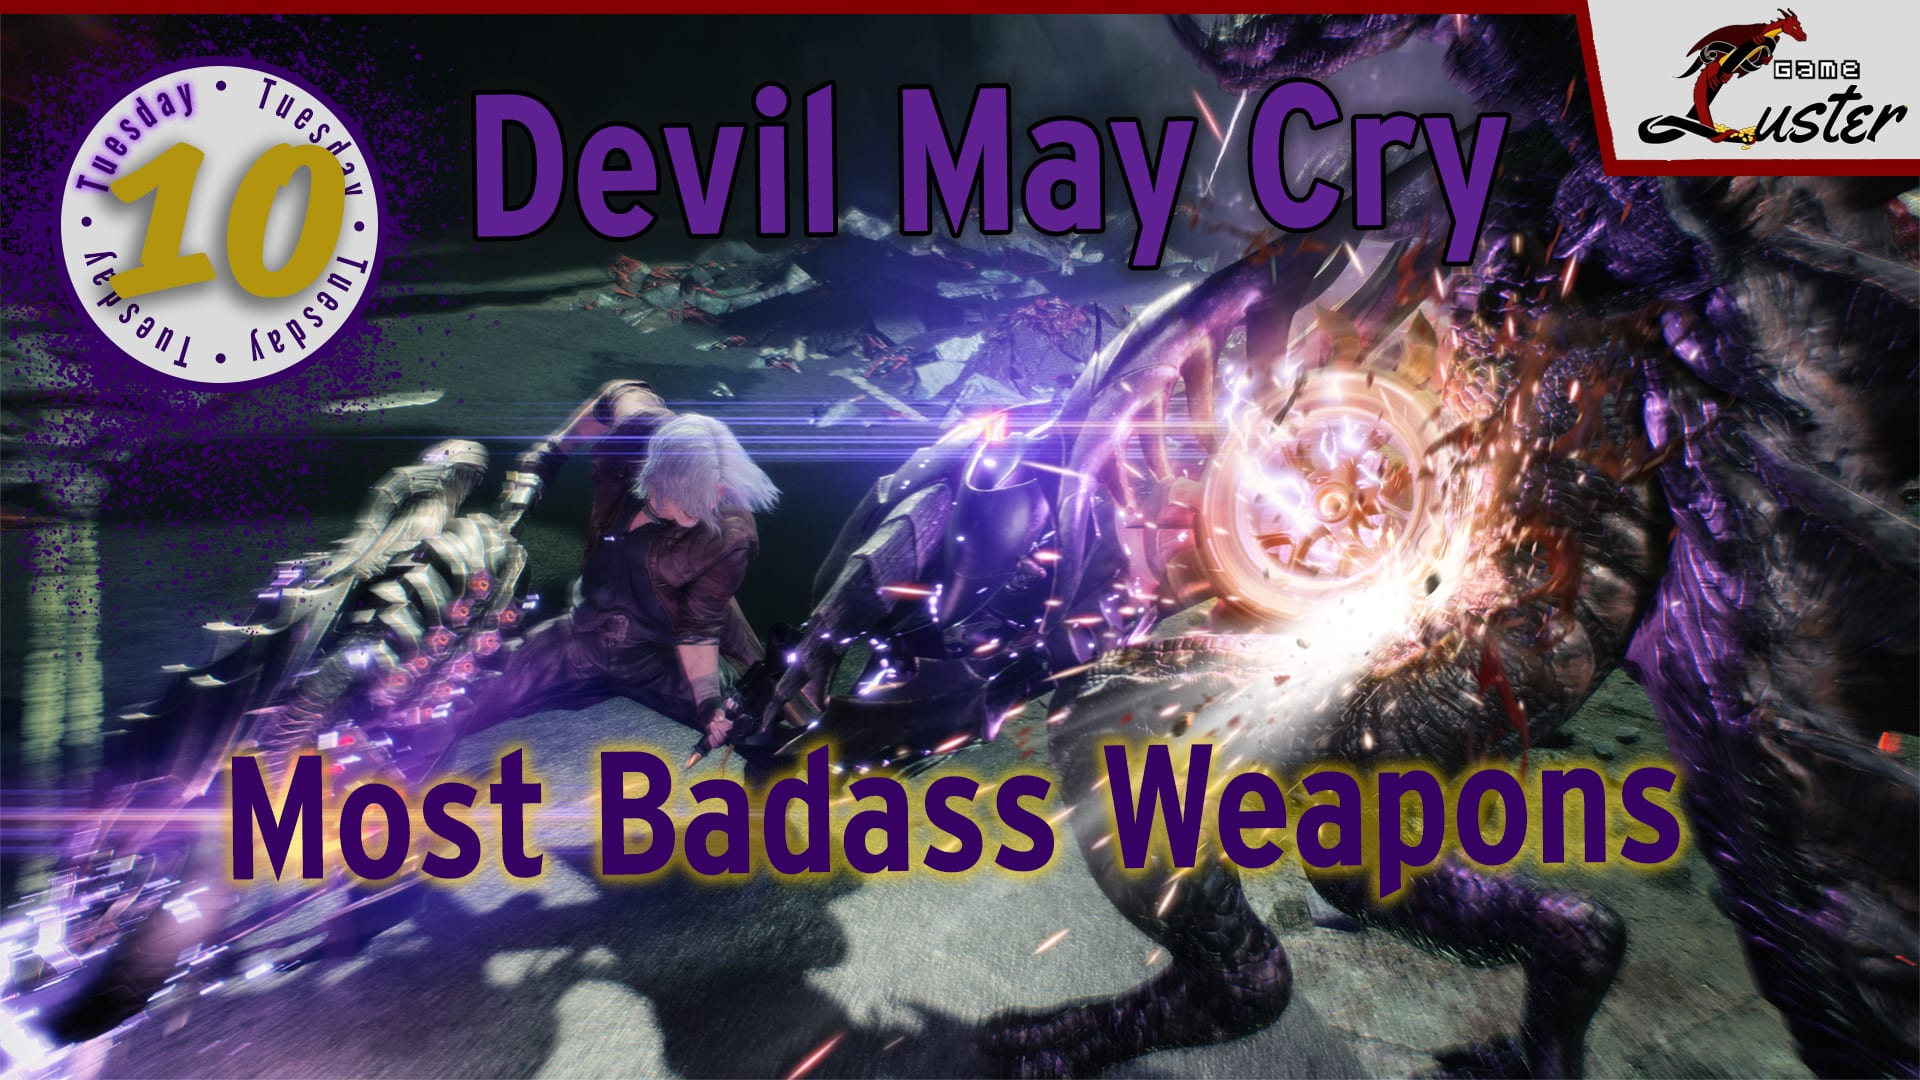 Tuesday 10 Devil May Cry Weapons